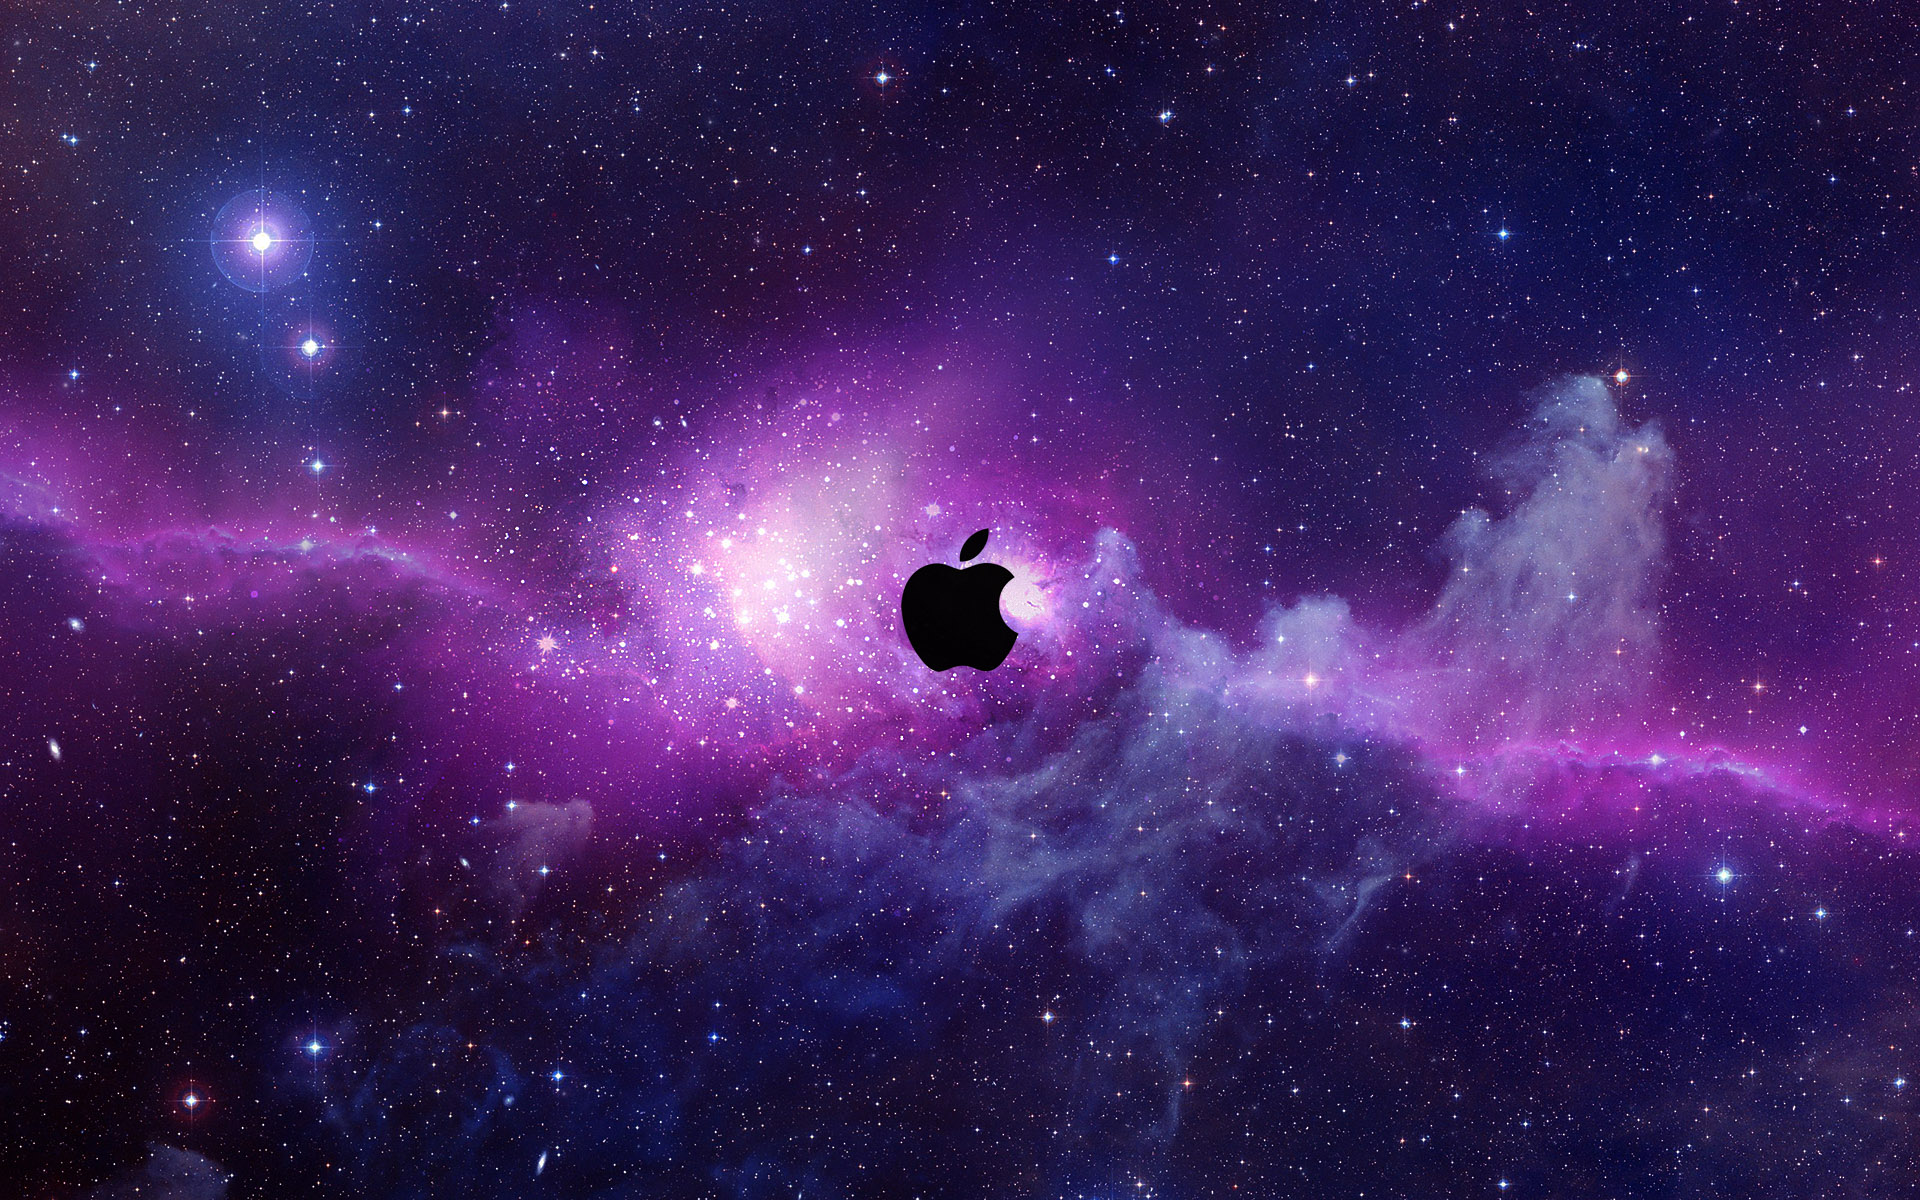 apple wallpaper 4k w302 apple wallpaper 4k w303 1920x1200